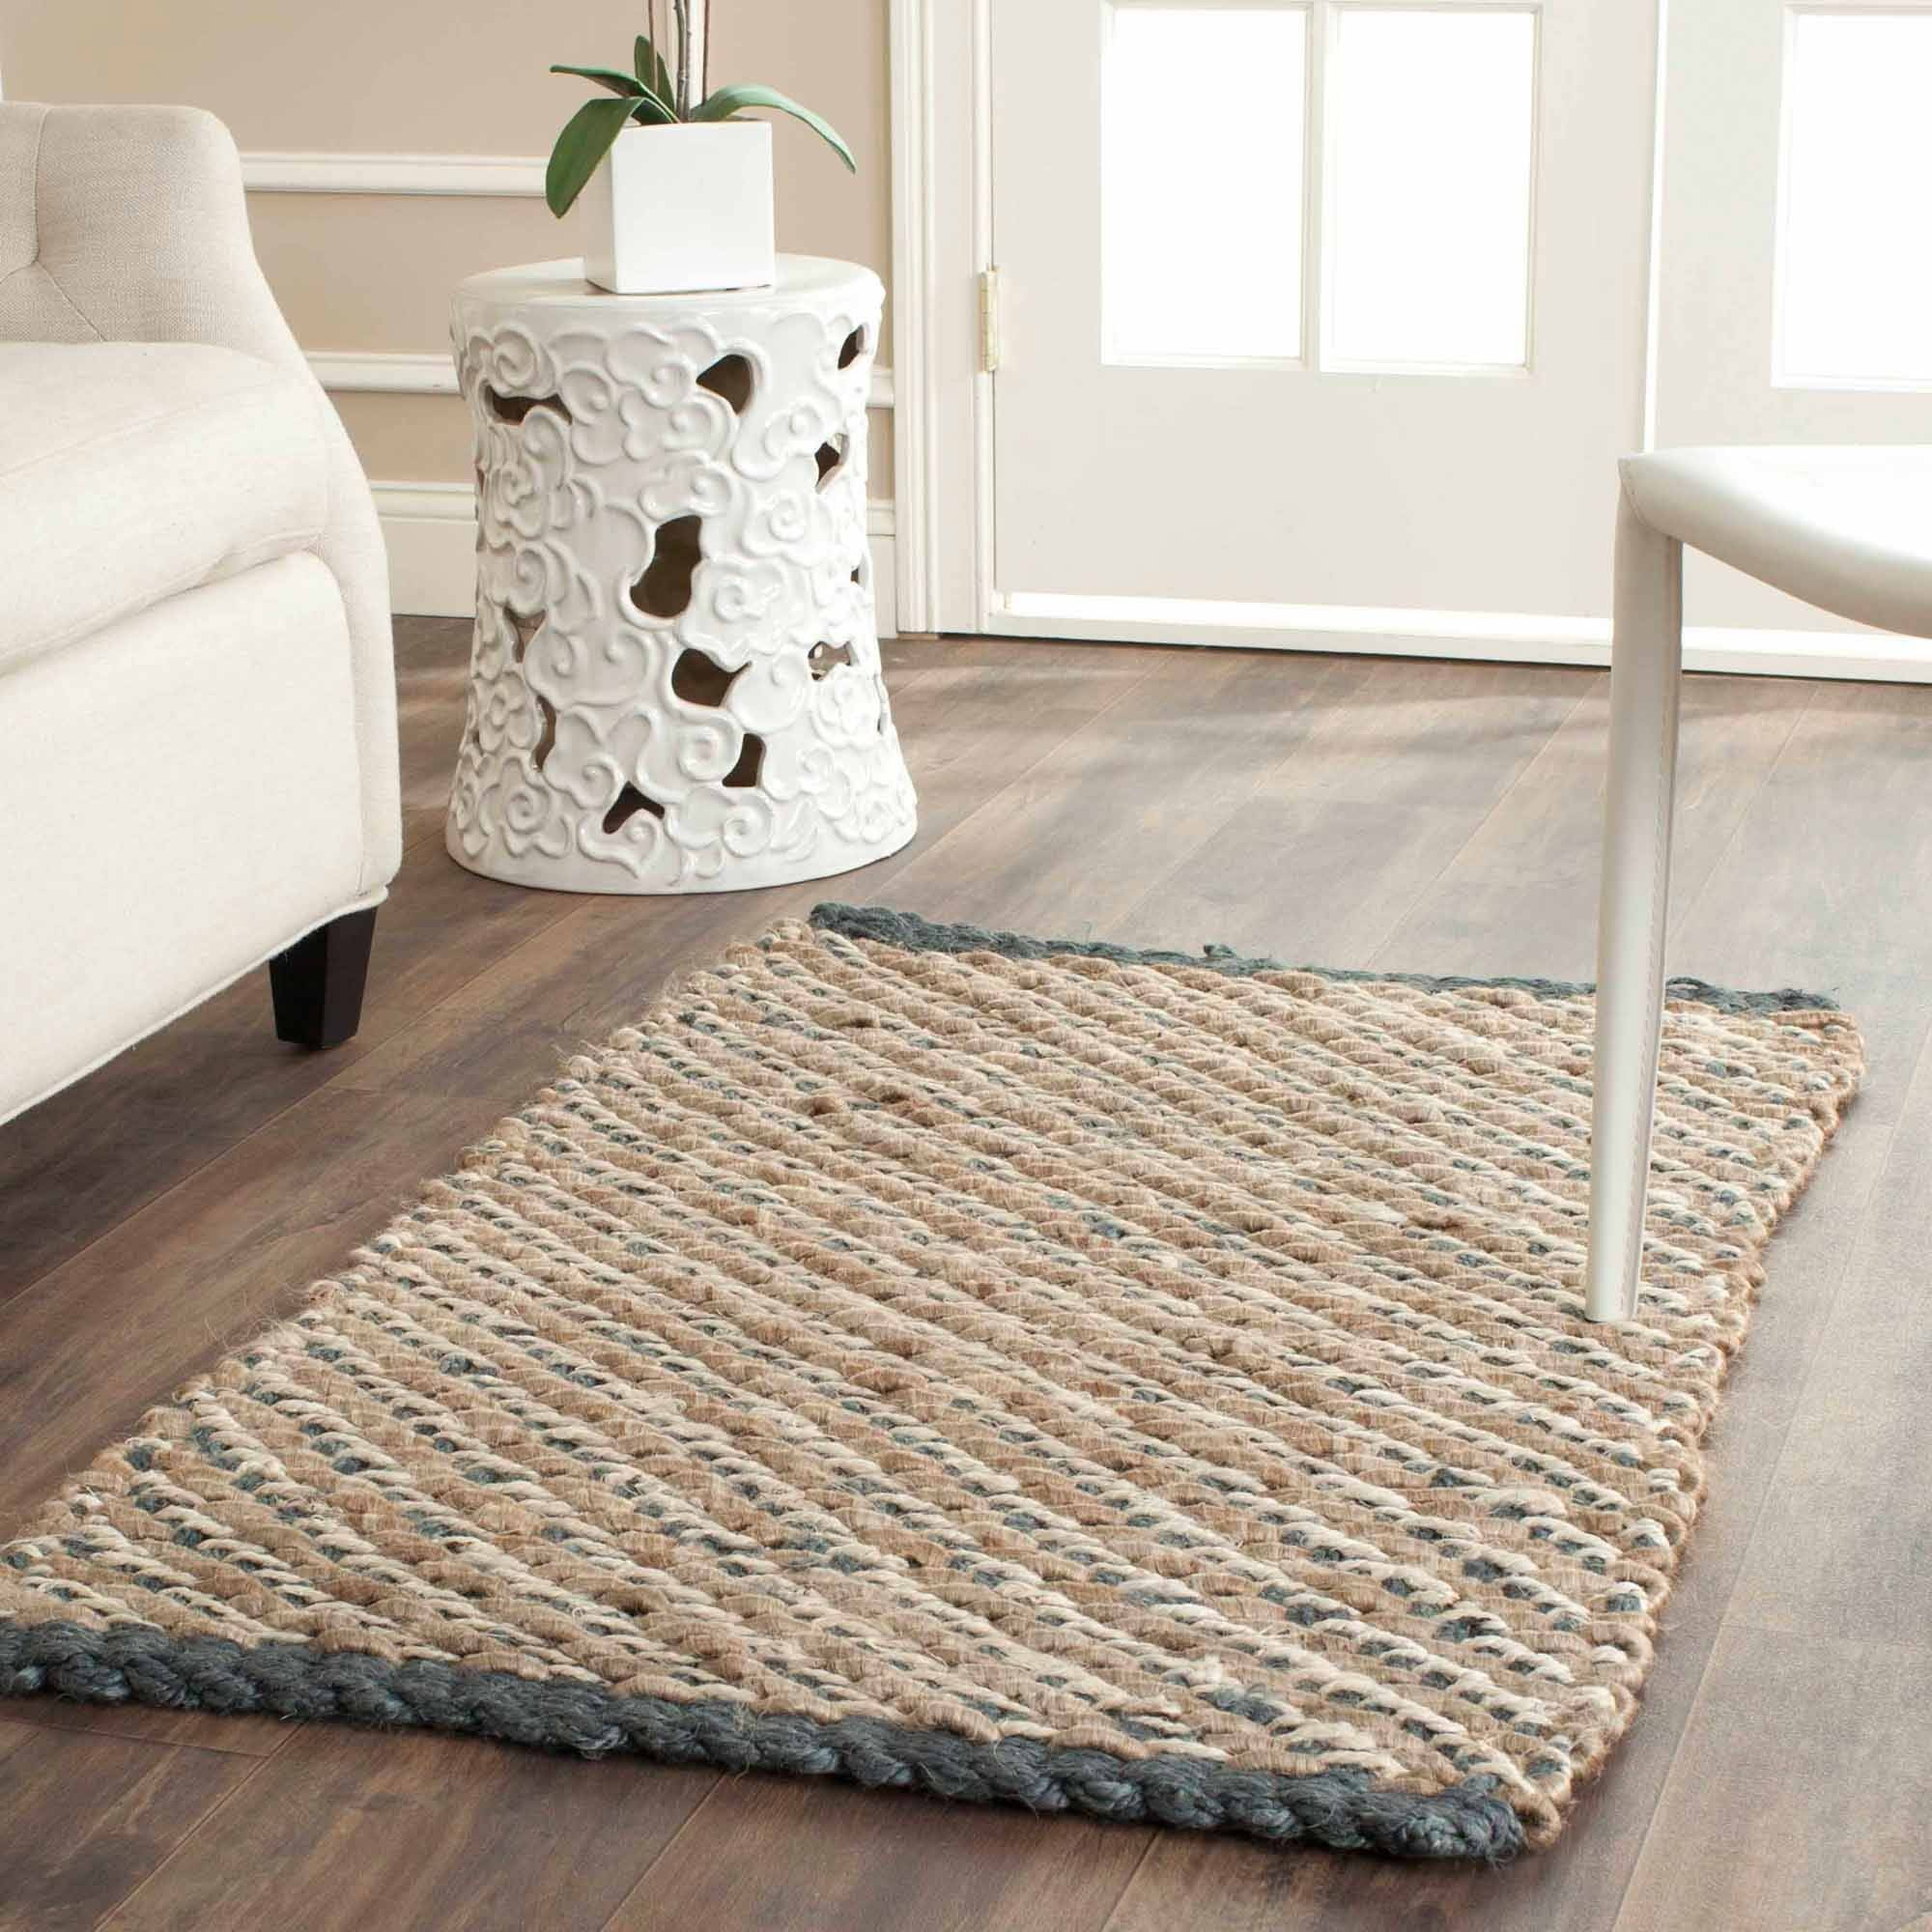 Safavieh Johanna Natural Fiber Area Rug, Blue/Natural